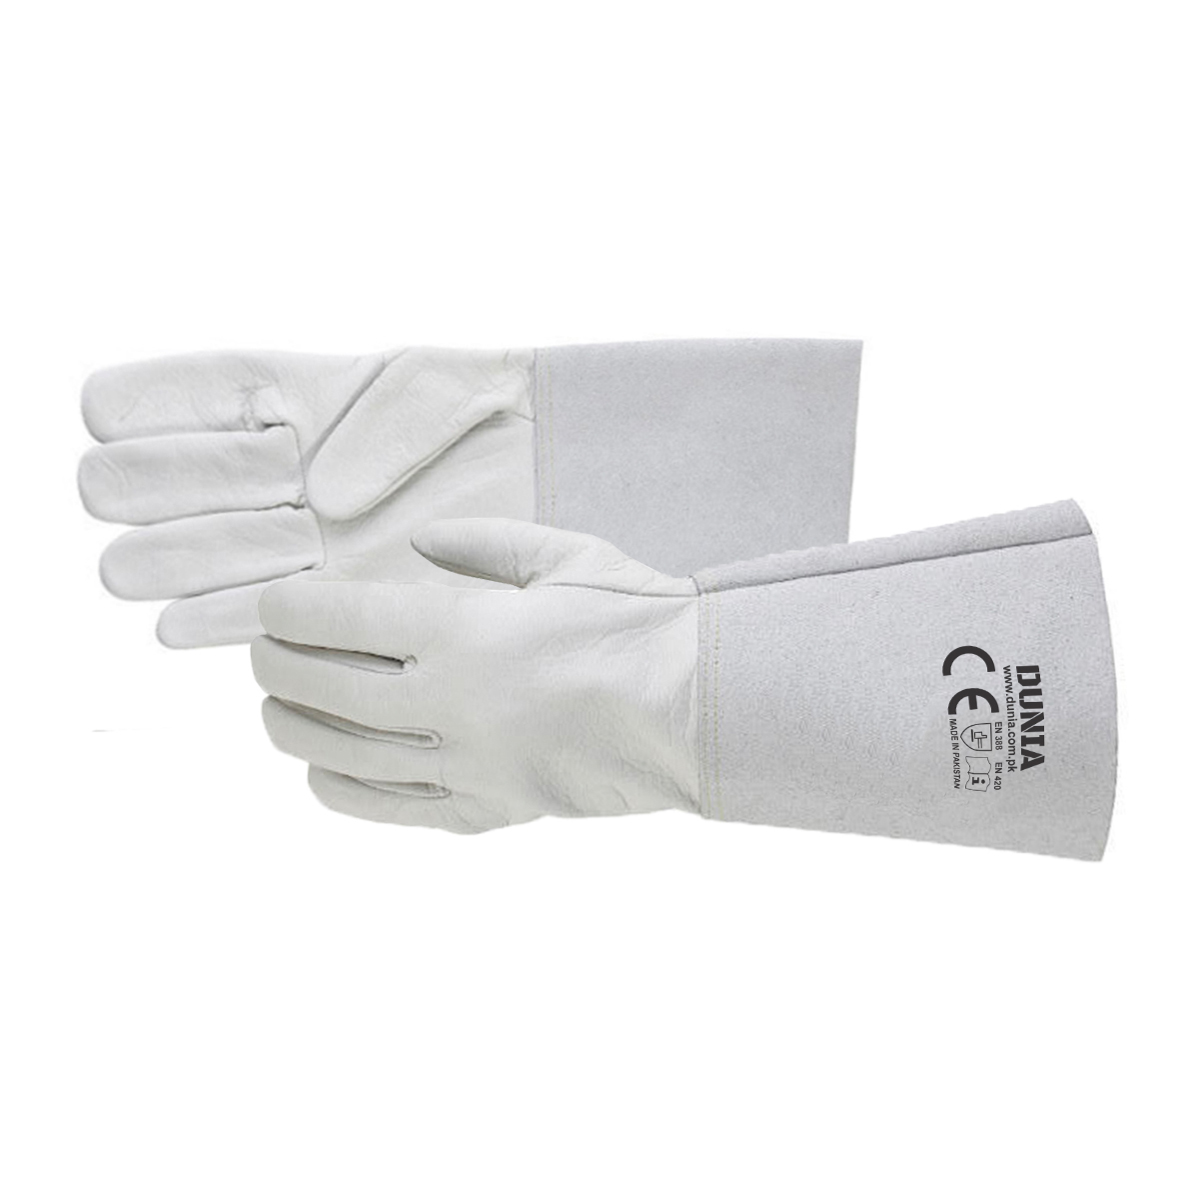 DTC-772 Tig Welder Gloves 14""